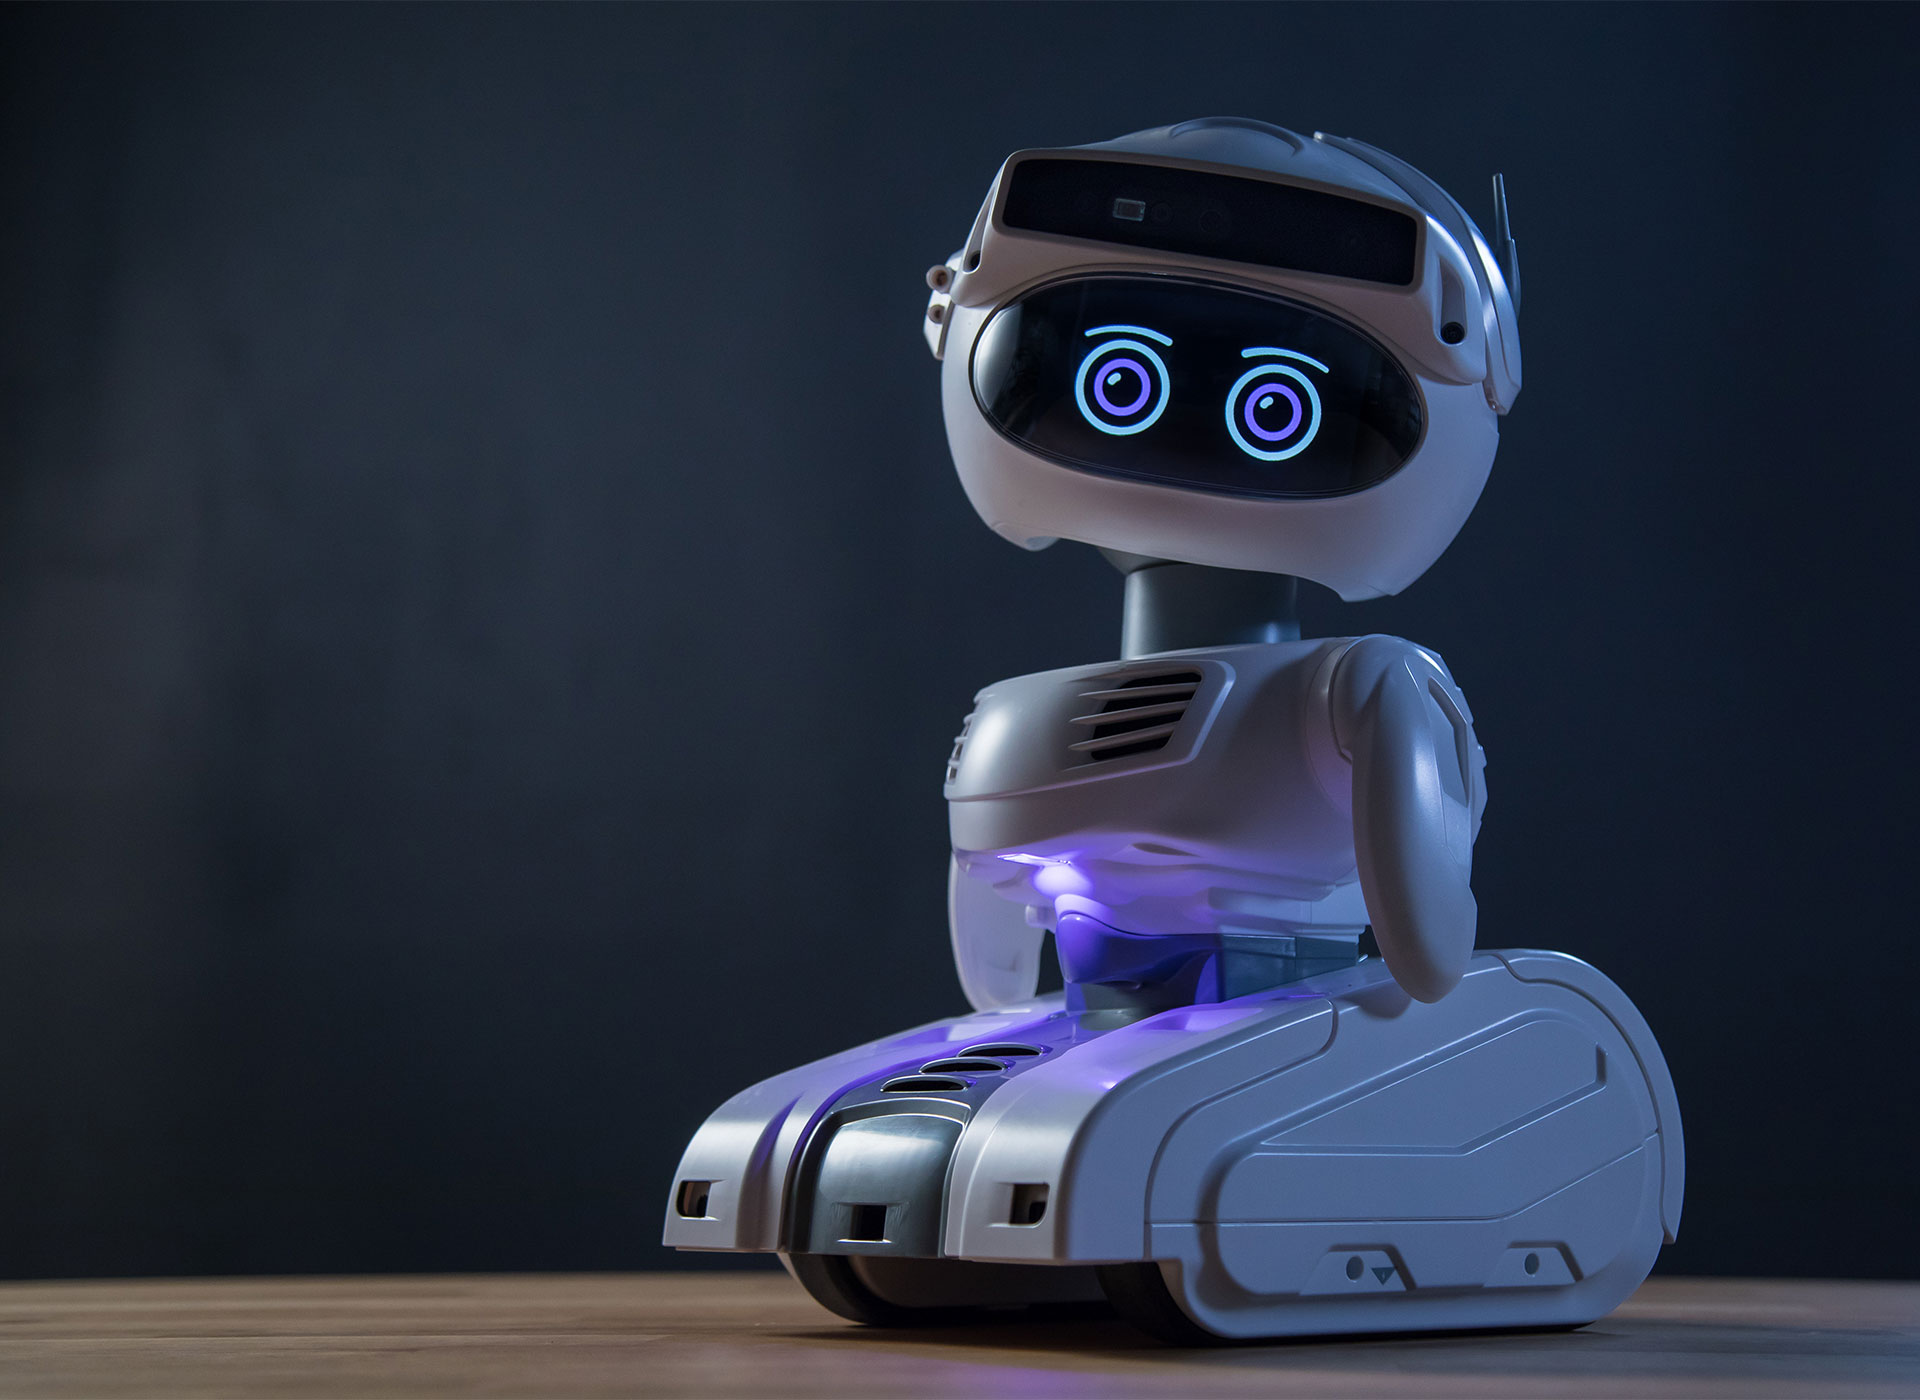 Temperature screening robot to support reopening offices